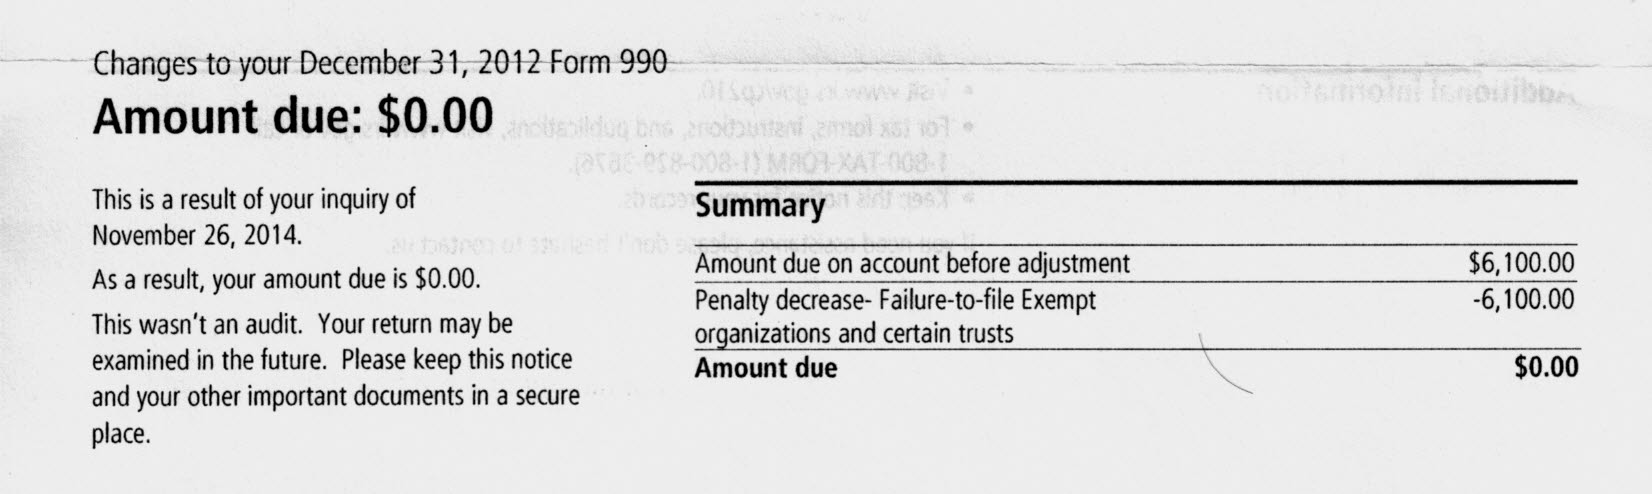 How to remove an irs form 990 late filing penalty write an irs nonprofit penalty abatement letter image falaconquin